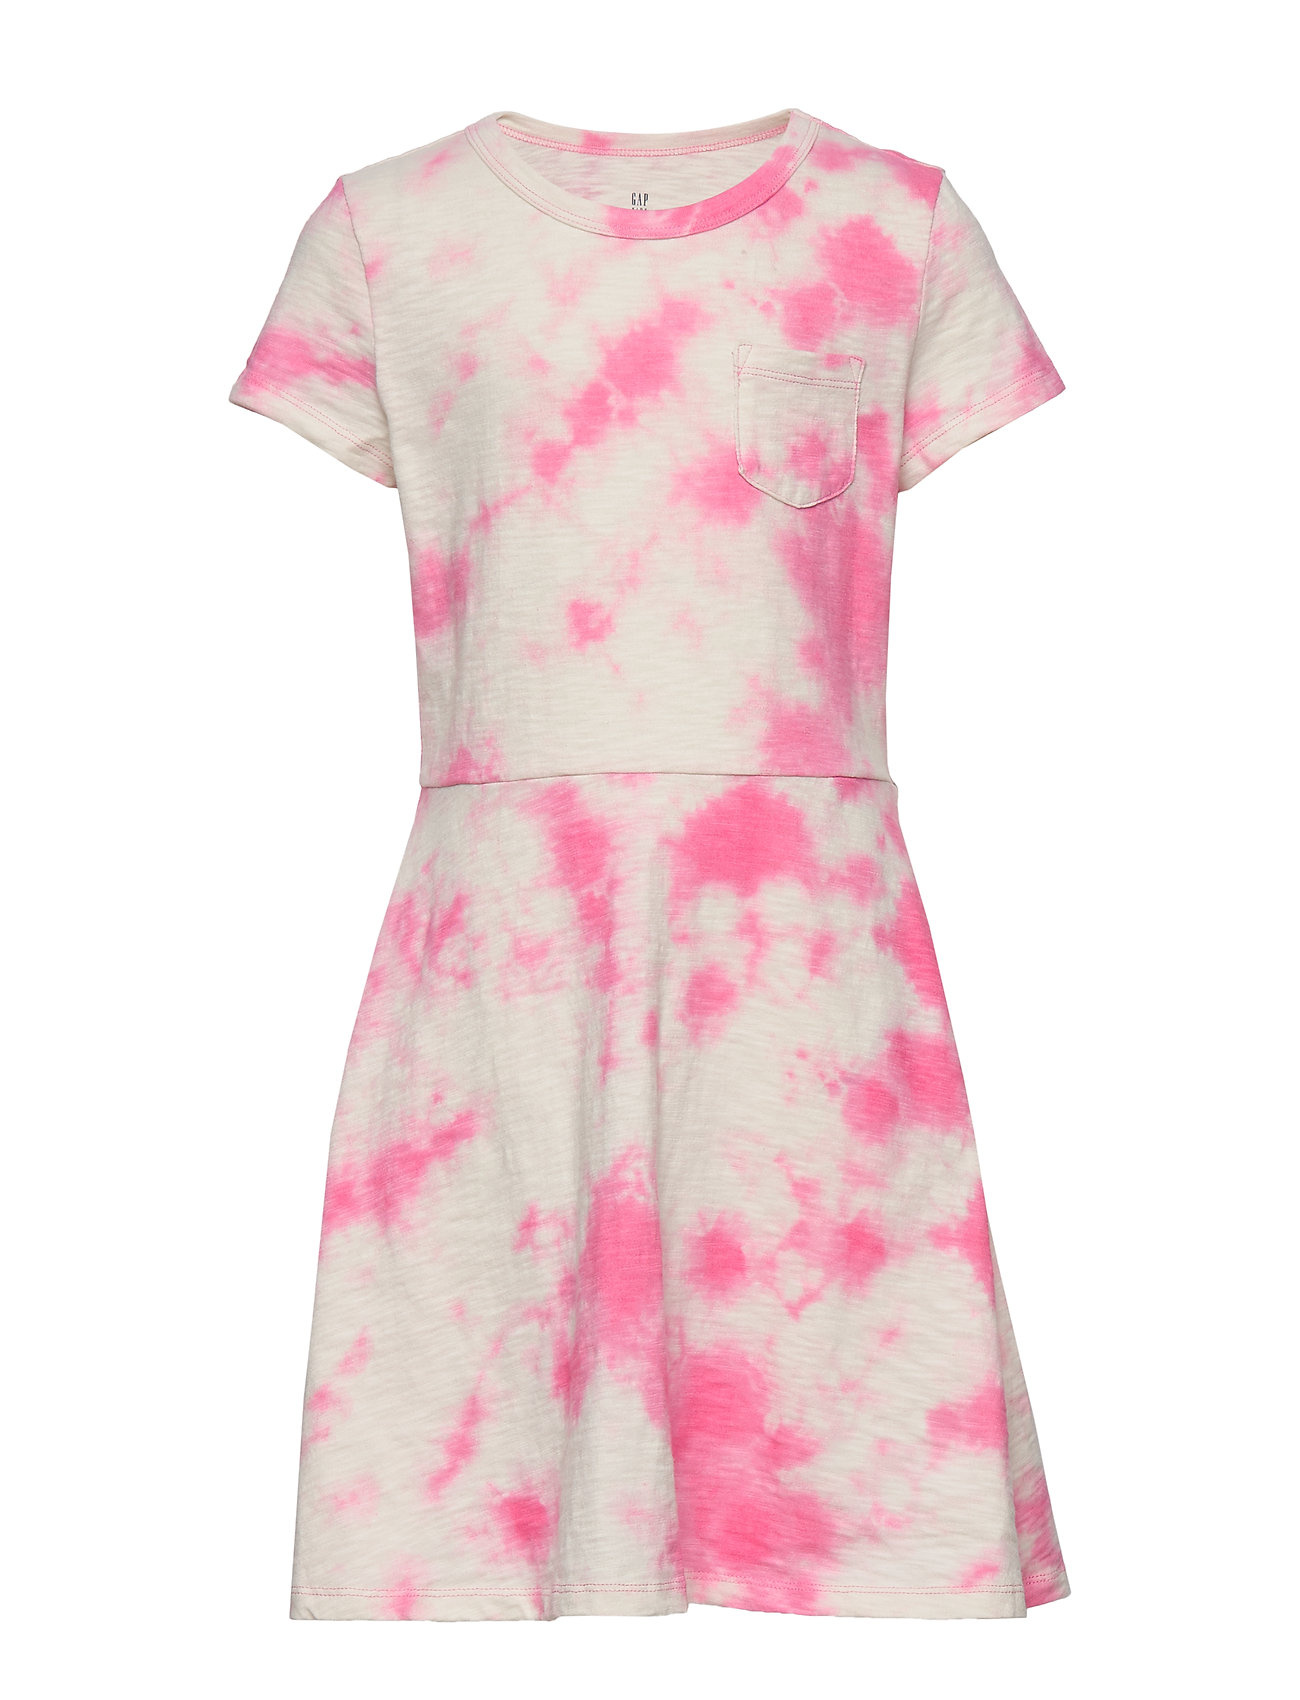 GAP Kids Print Fit and Flare Dress - PINK TIE DYE